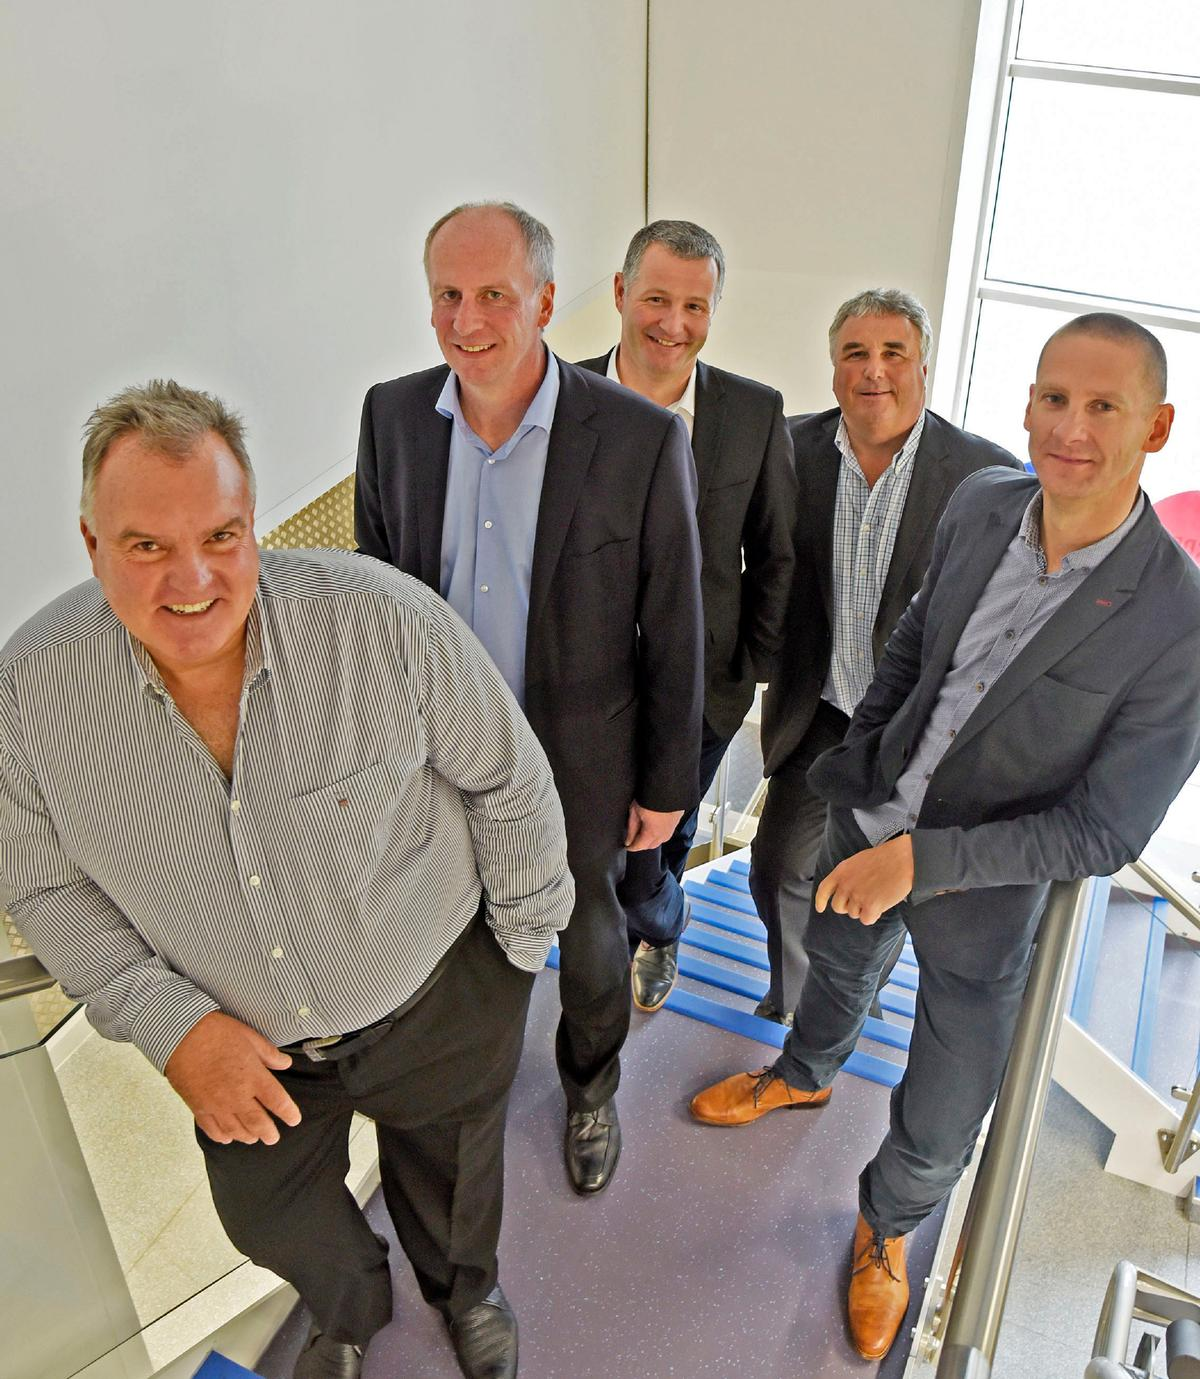 Treharne and his top team have built a business valued at £250m from scratch / The Gym Group